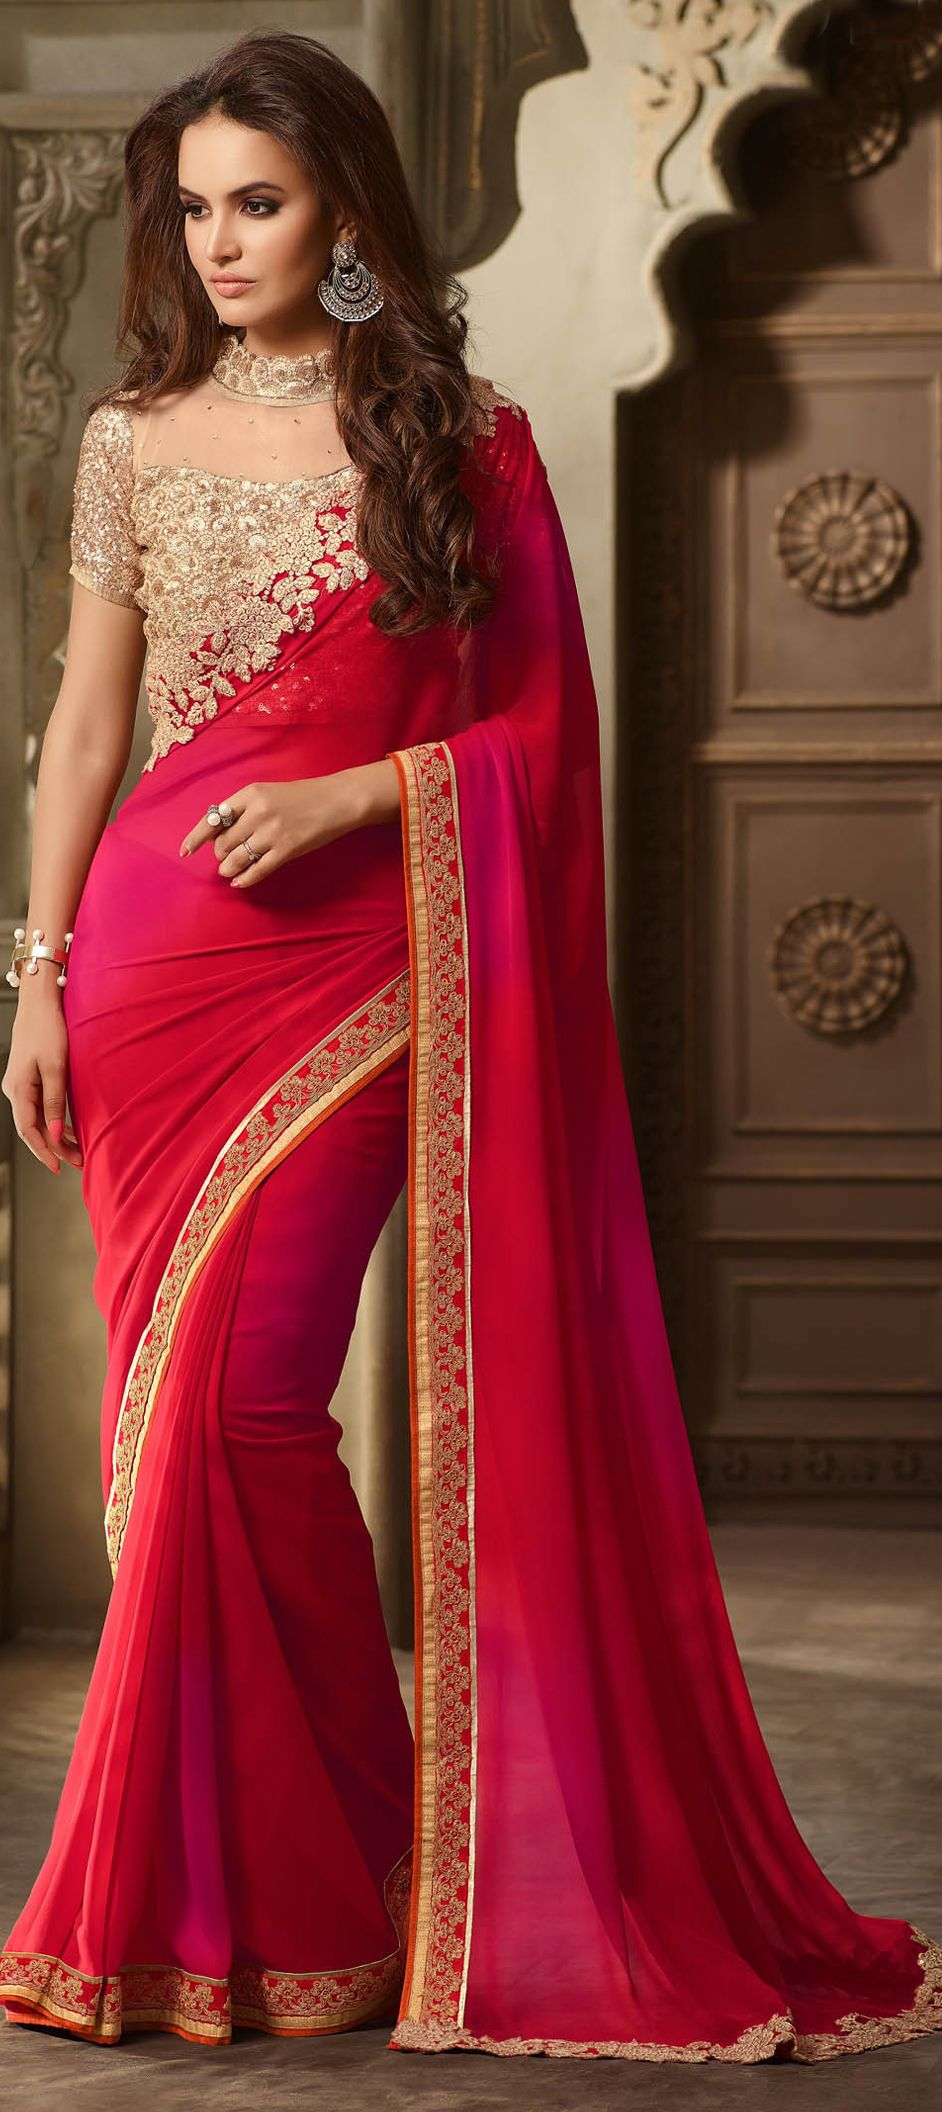 bdf41f6c055bf 709849  Pink and Majenta color family Embroidered Sarees